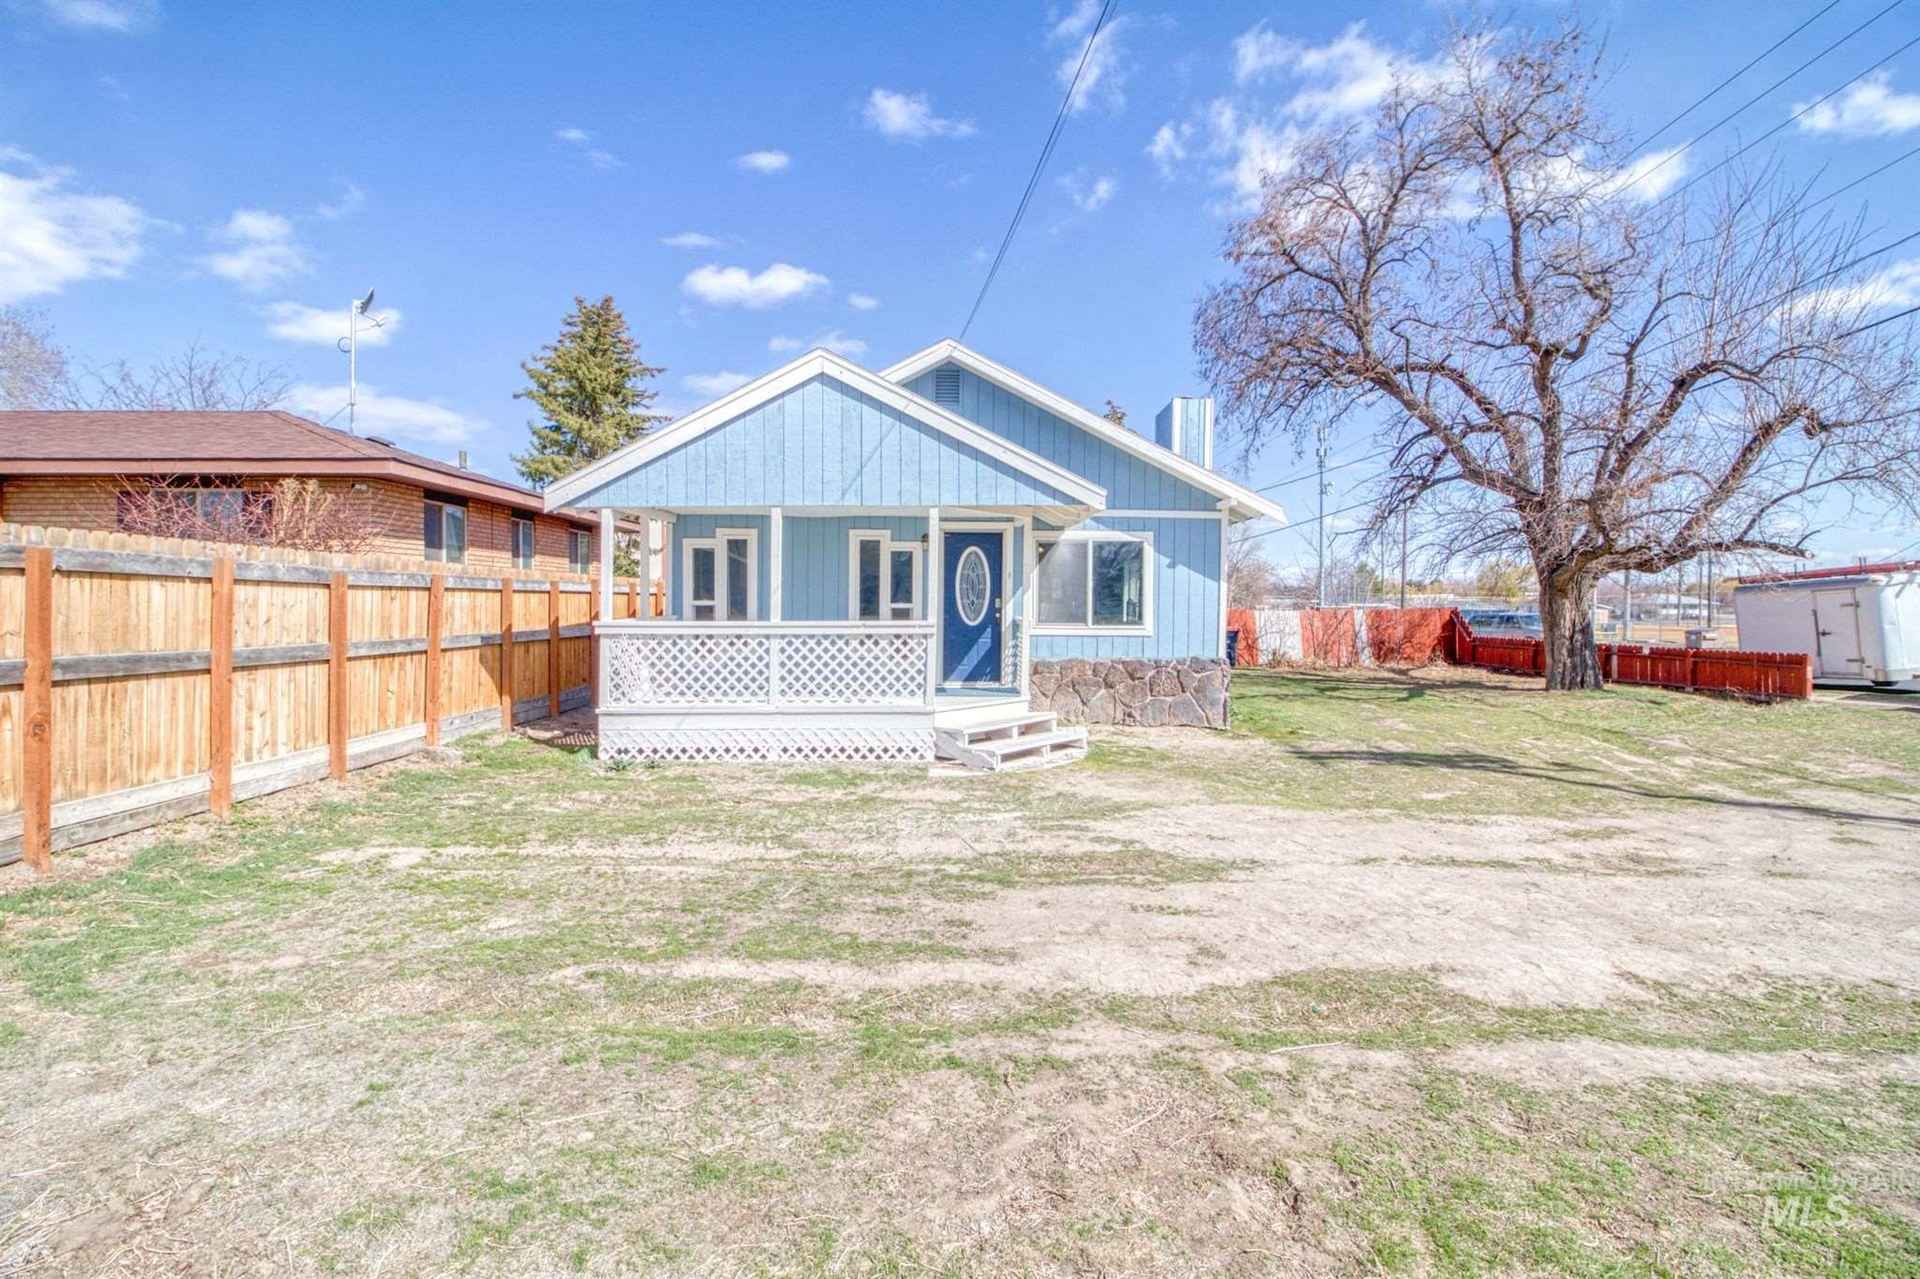 Photo of 604 Maurice, Twin Falls, ID 83301-6952 (MLS # 98797799)